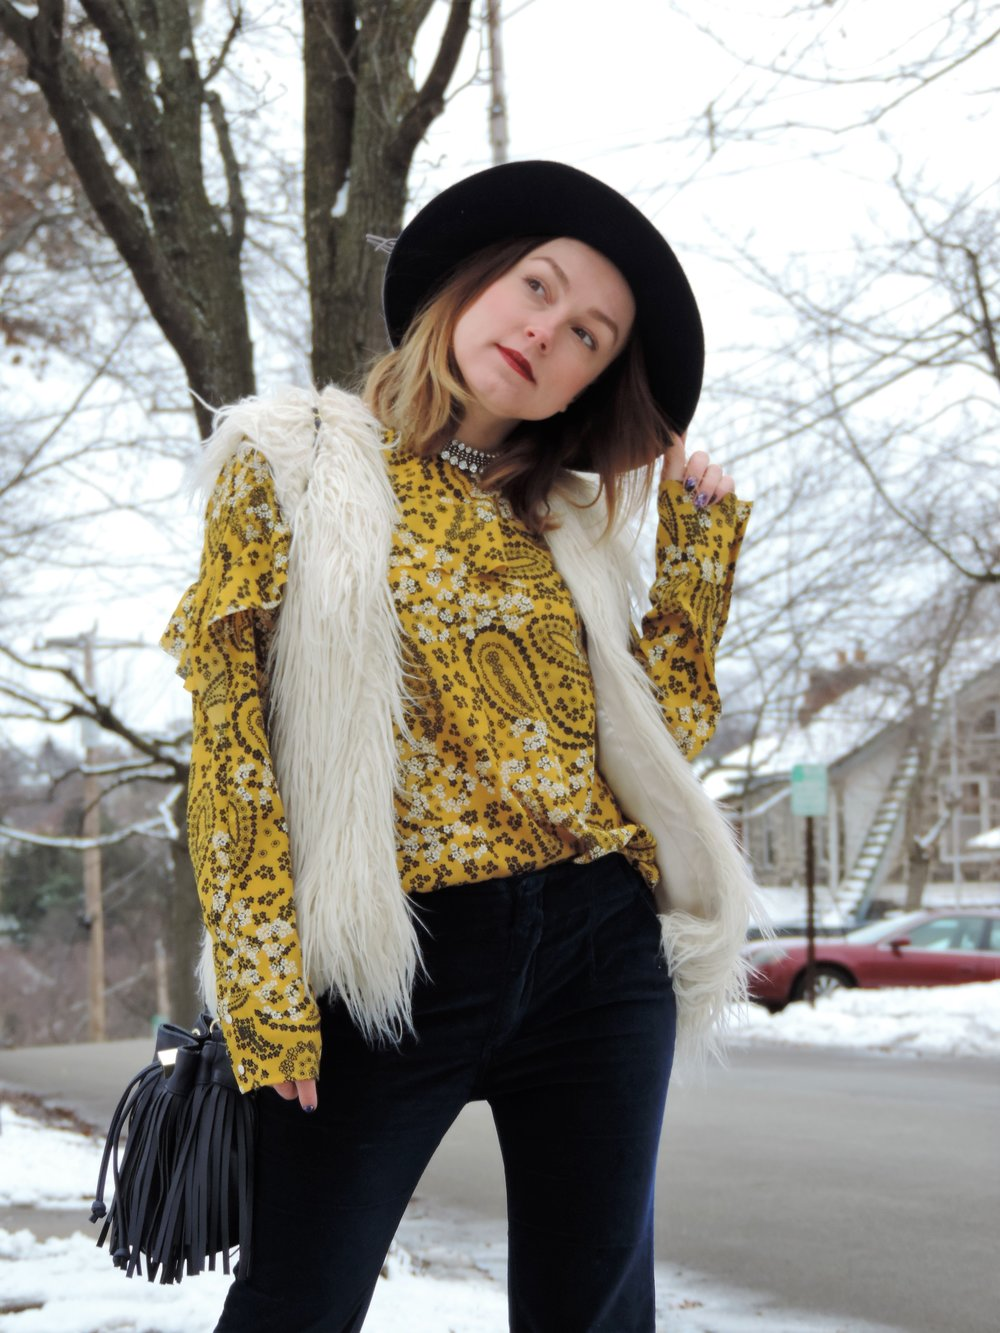 70s inspired outfit winter